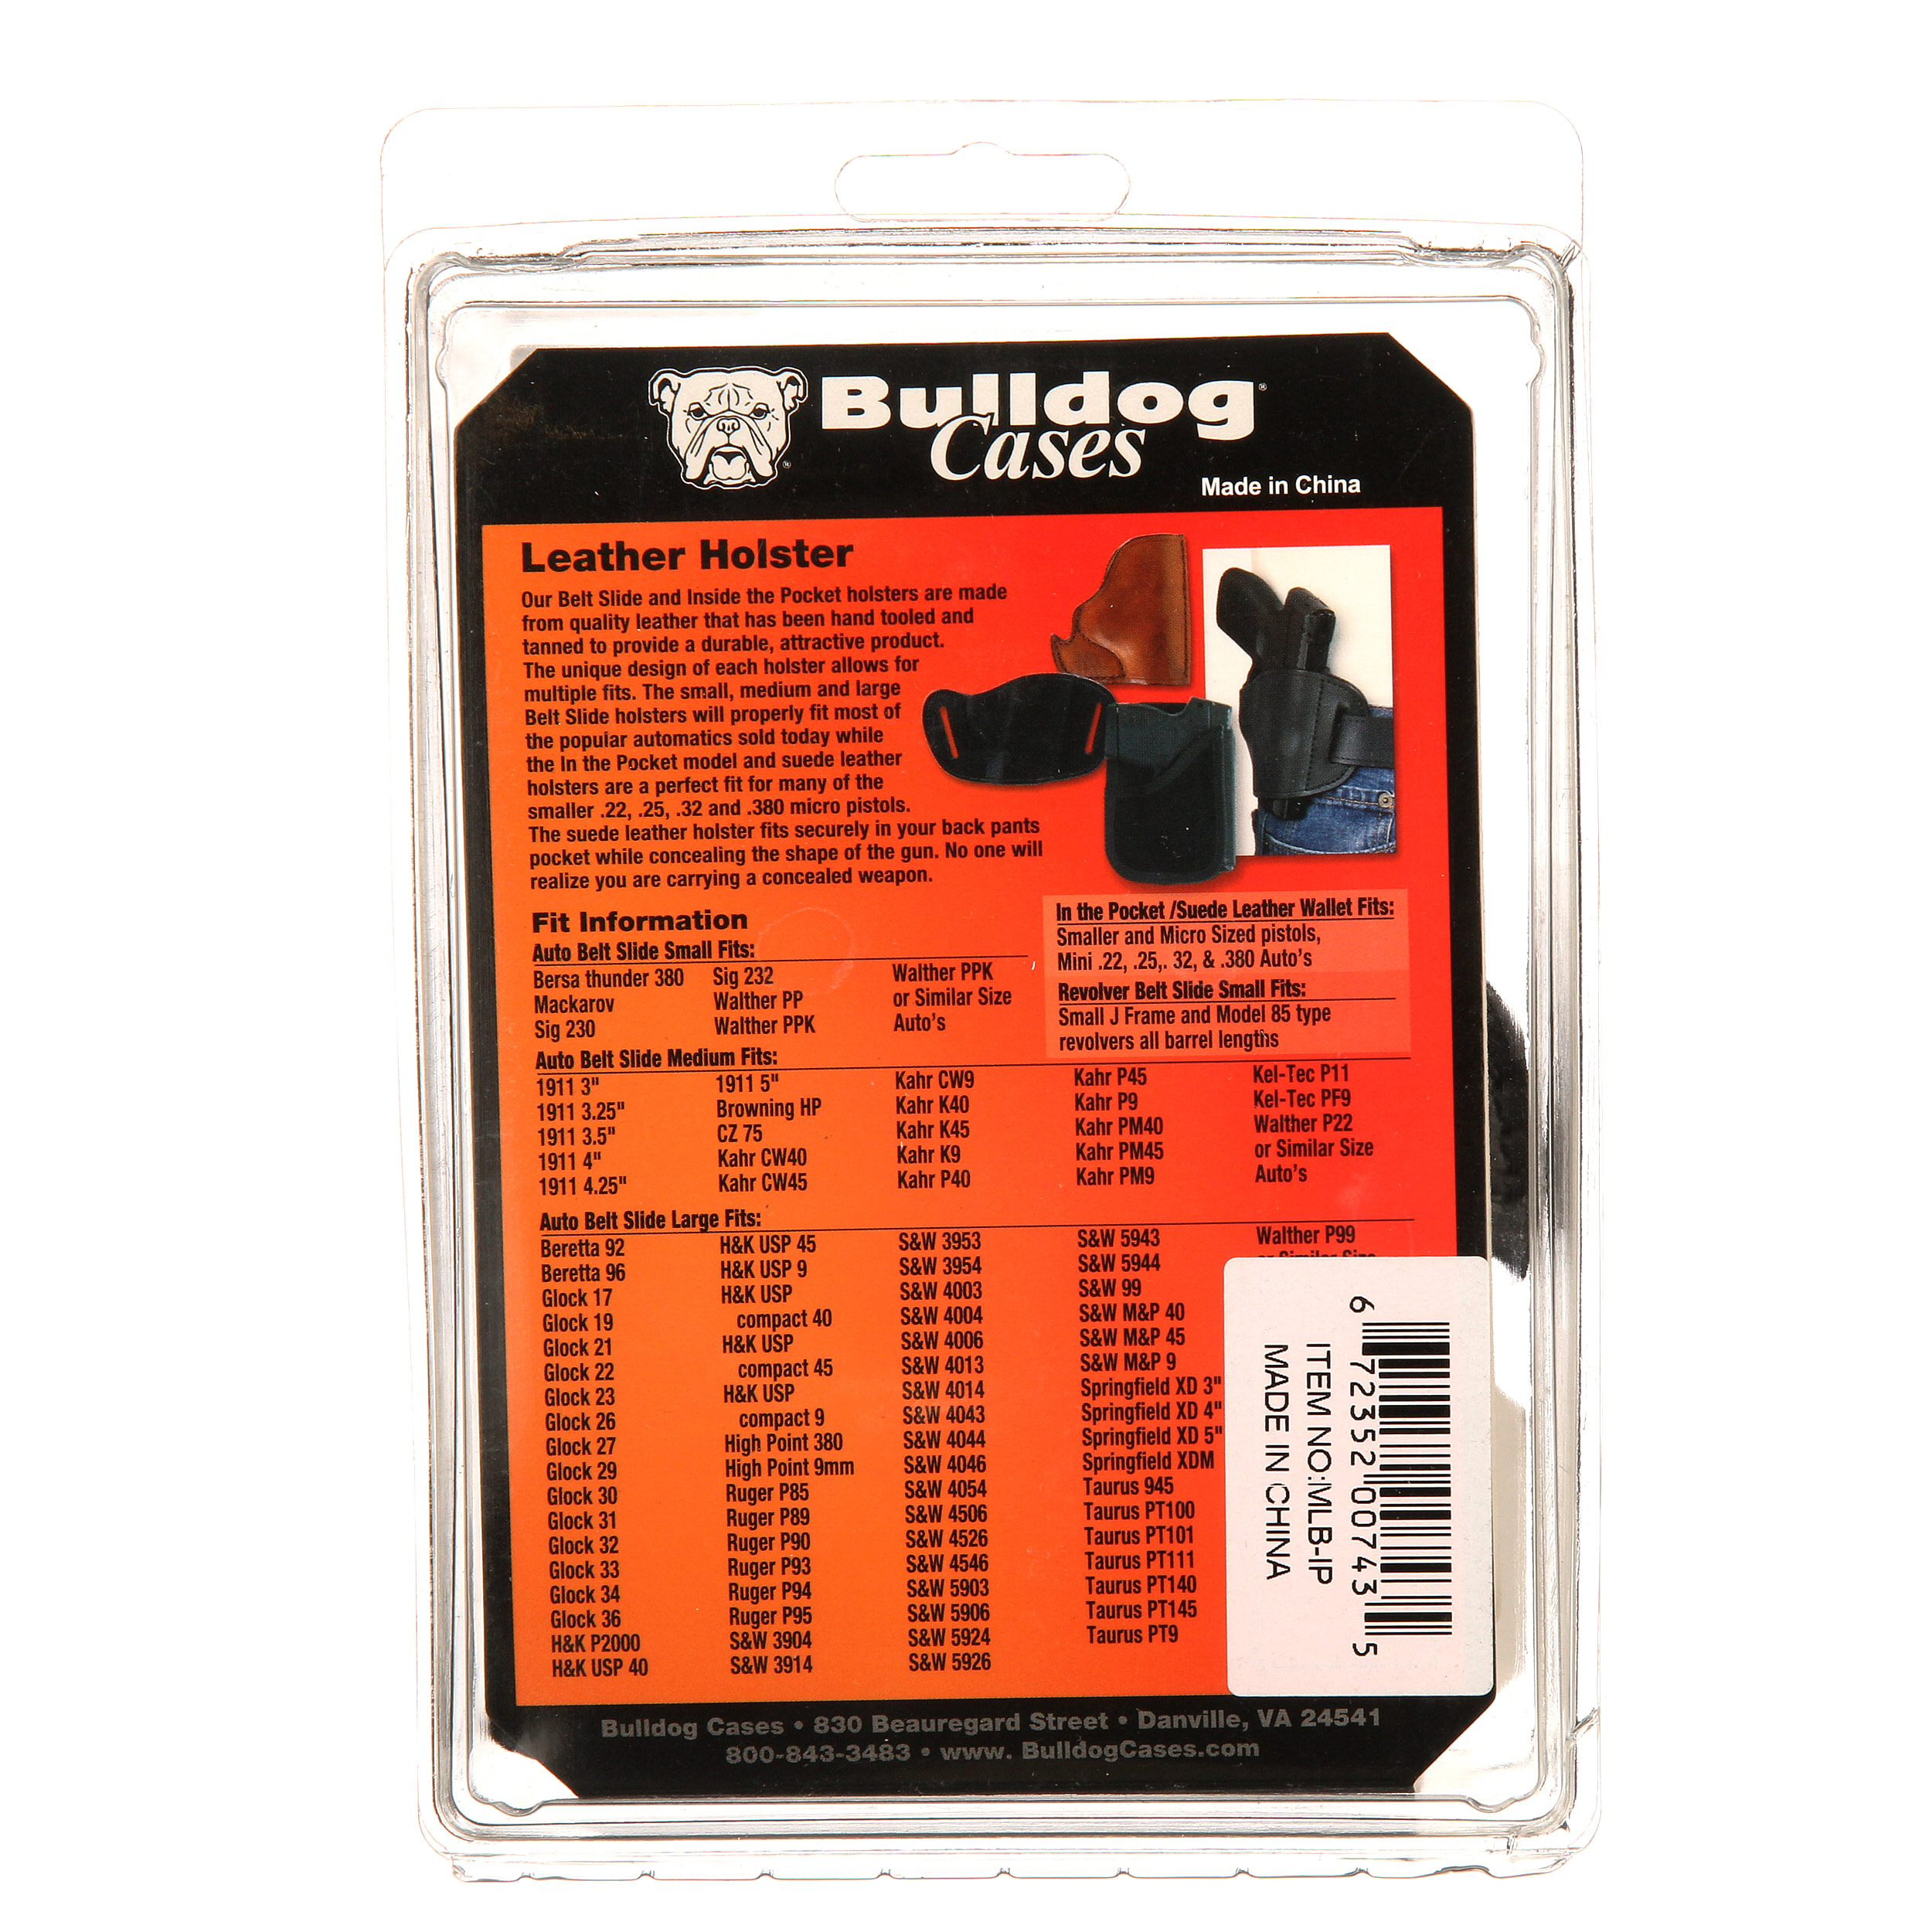 BULLDOG SUEDE LEATHER WALLET HOLSTER FOR MICRO SIZED PISTOLS